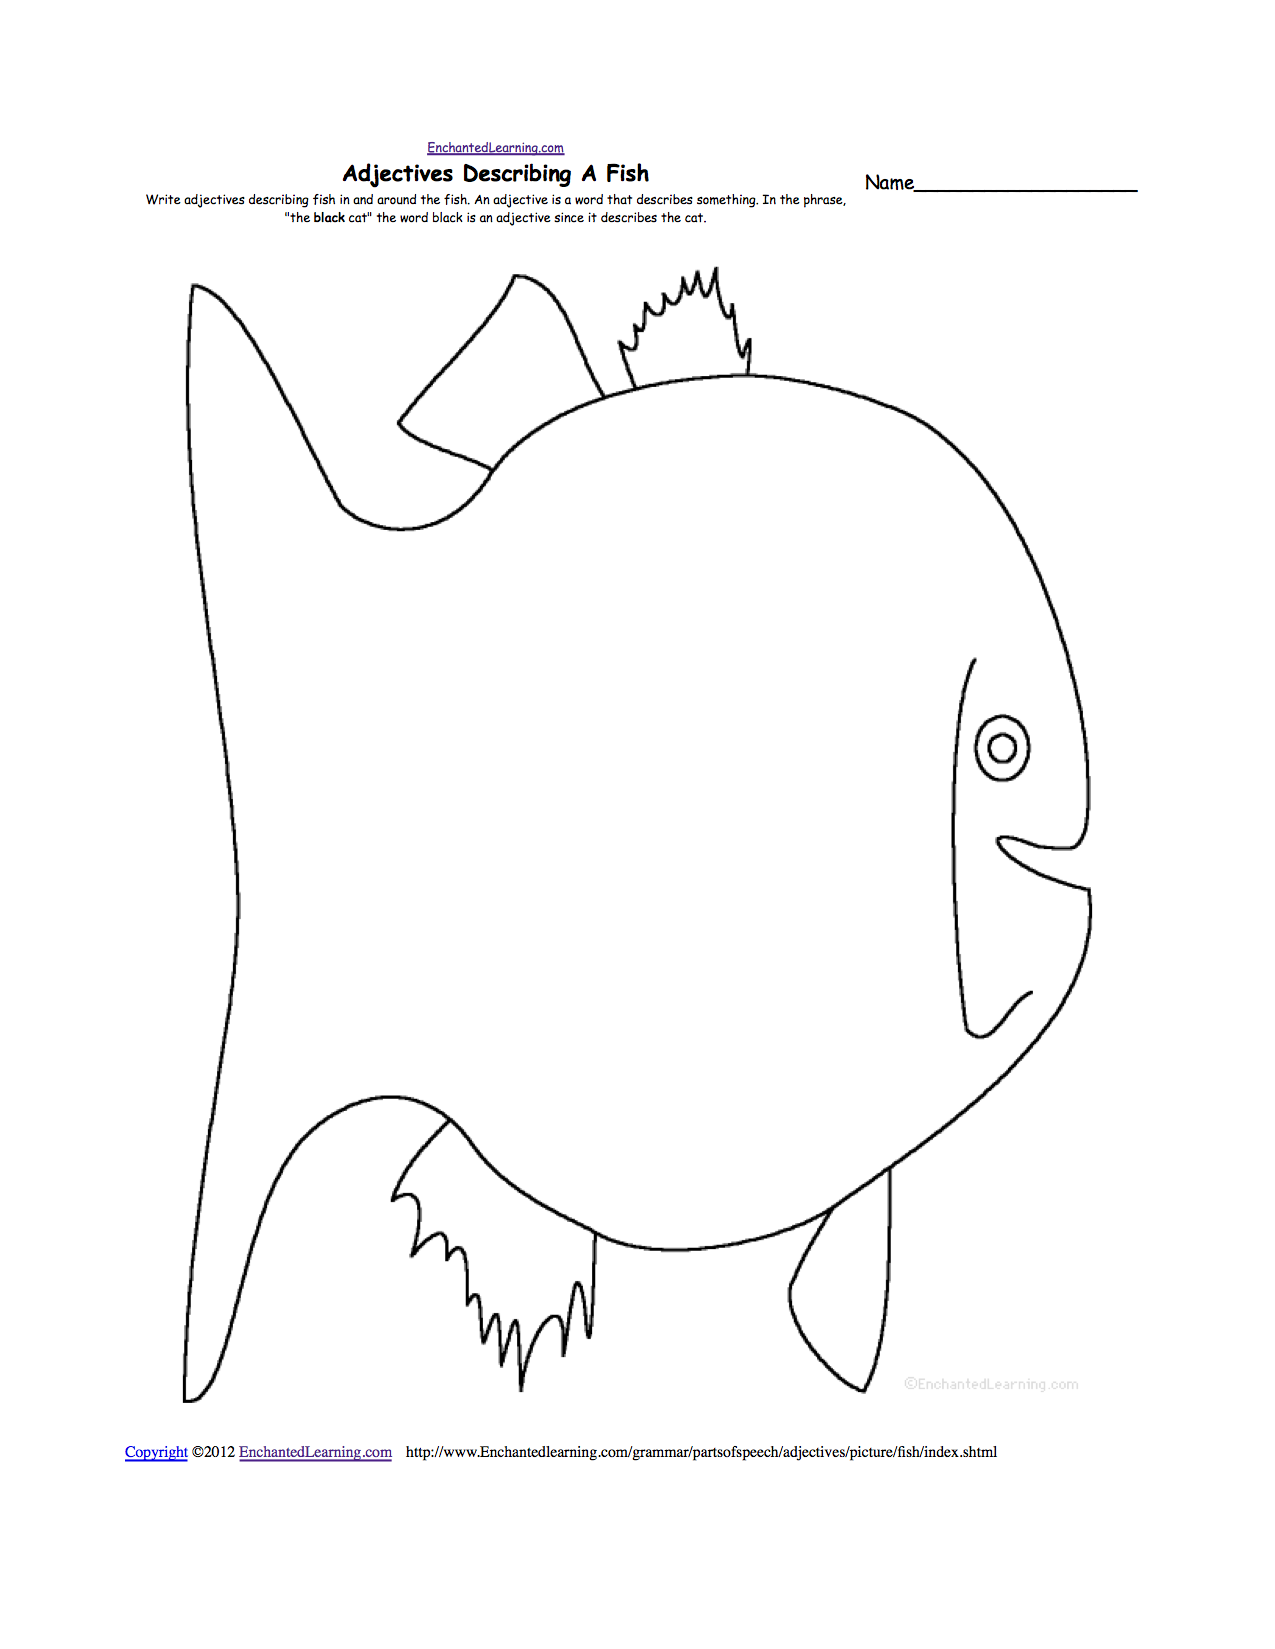 adjectives describing a fish printable worksheet